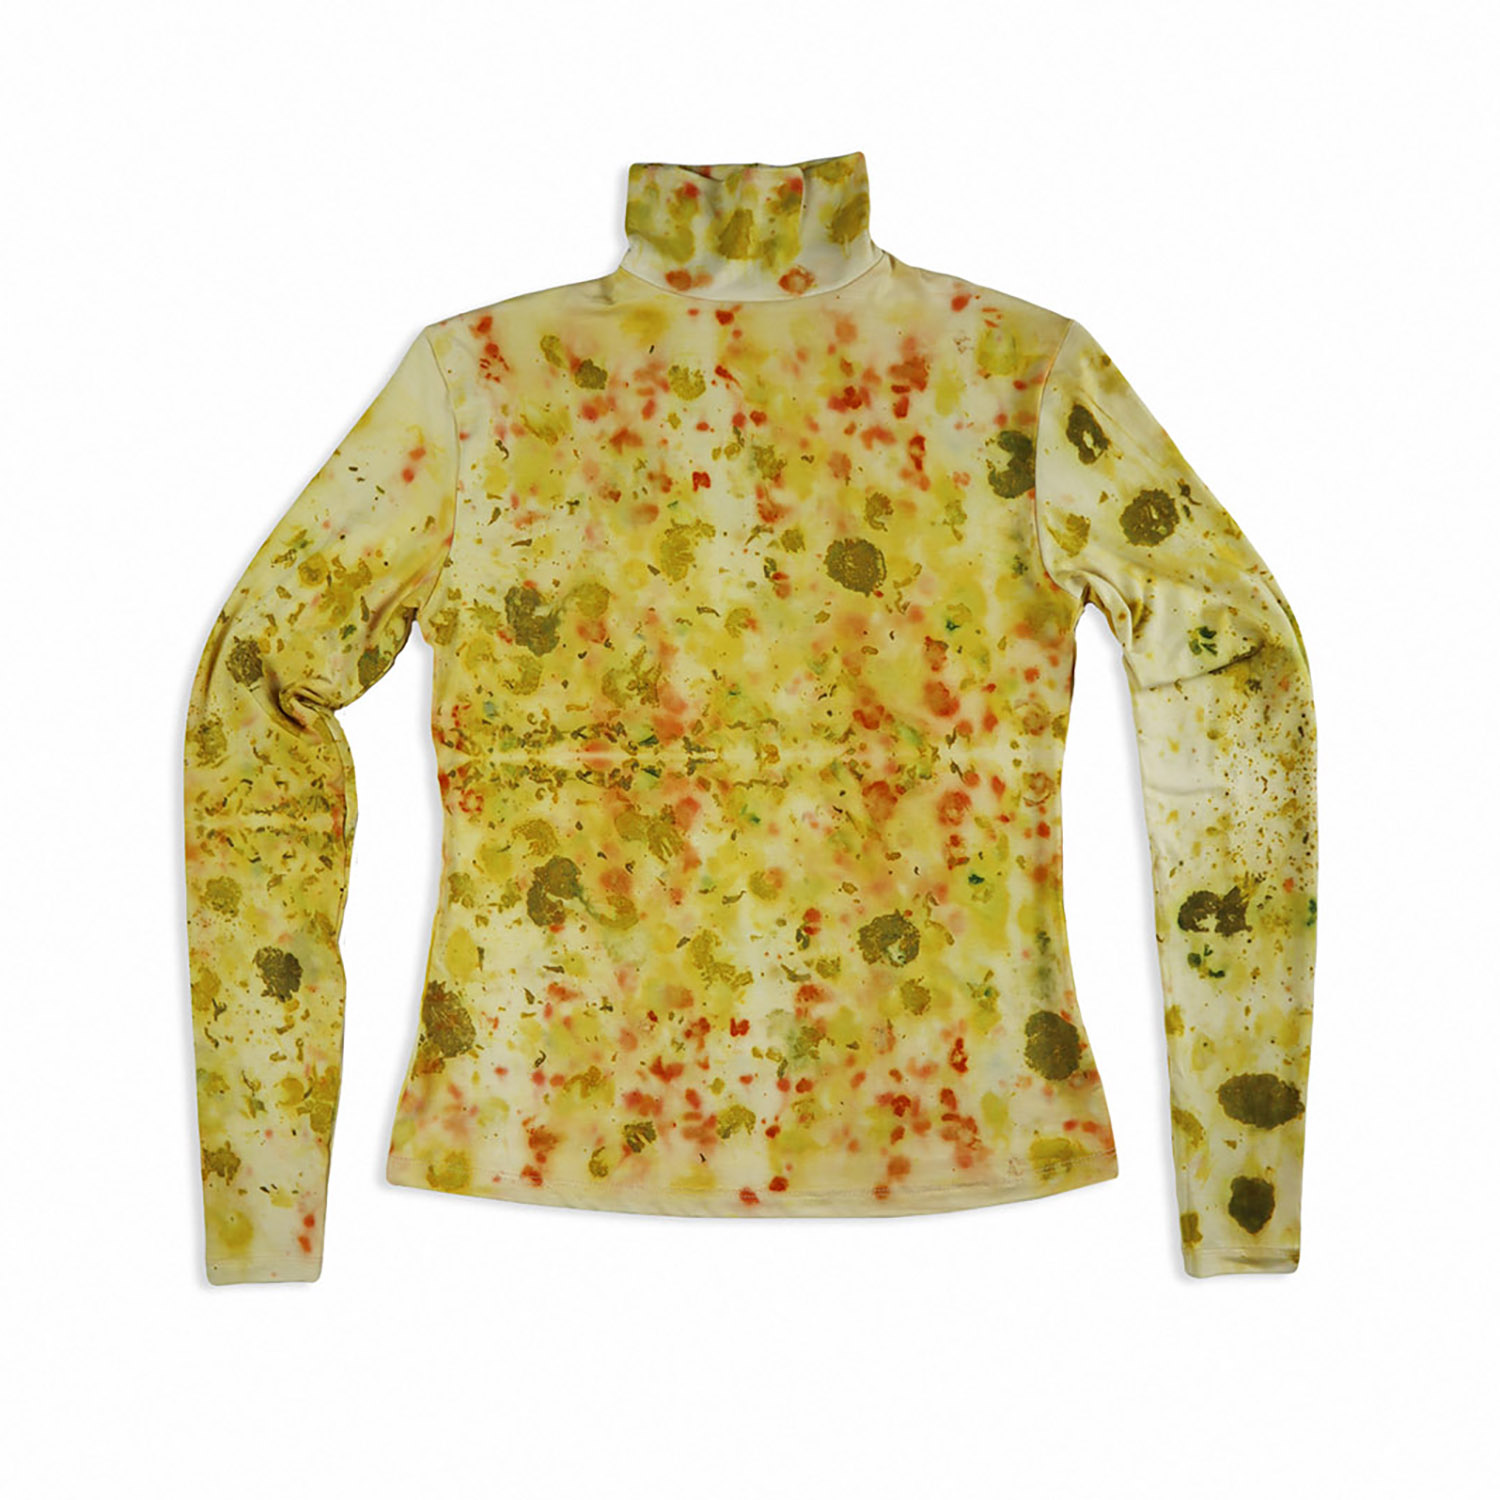 Bamboo Jersey Turtleneck Sweater - Eco-printed with Coreopsis Flowers